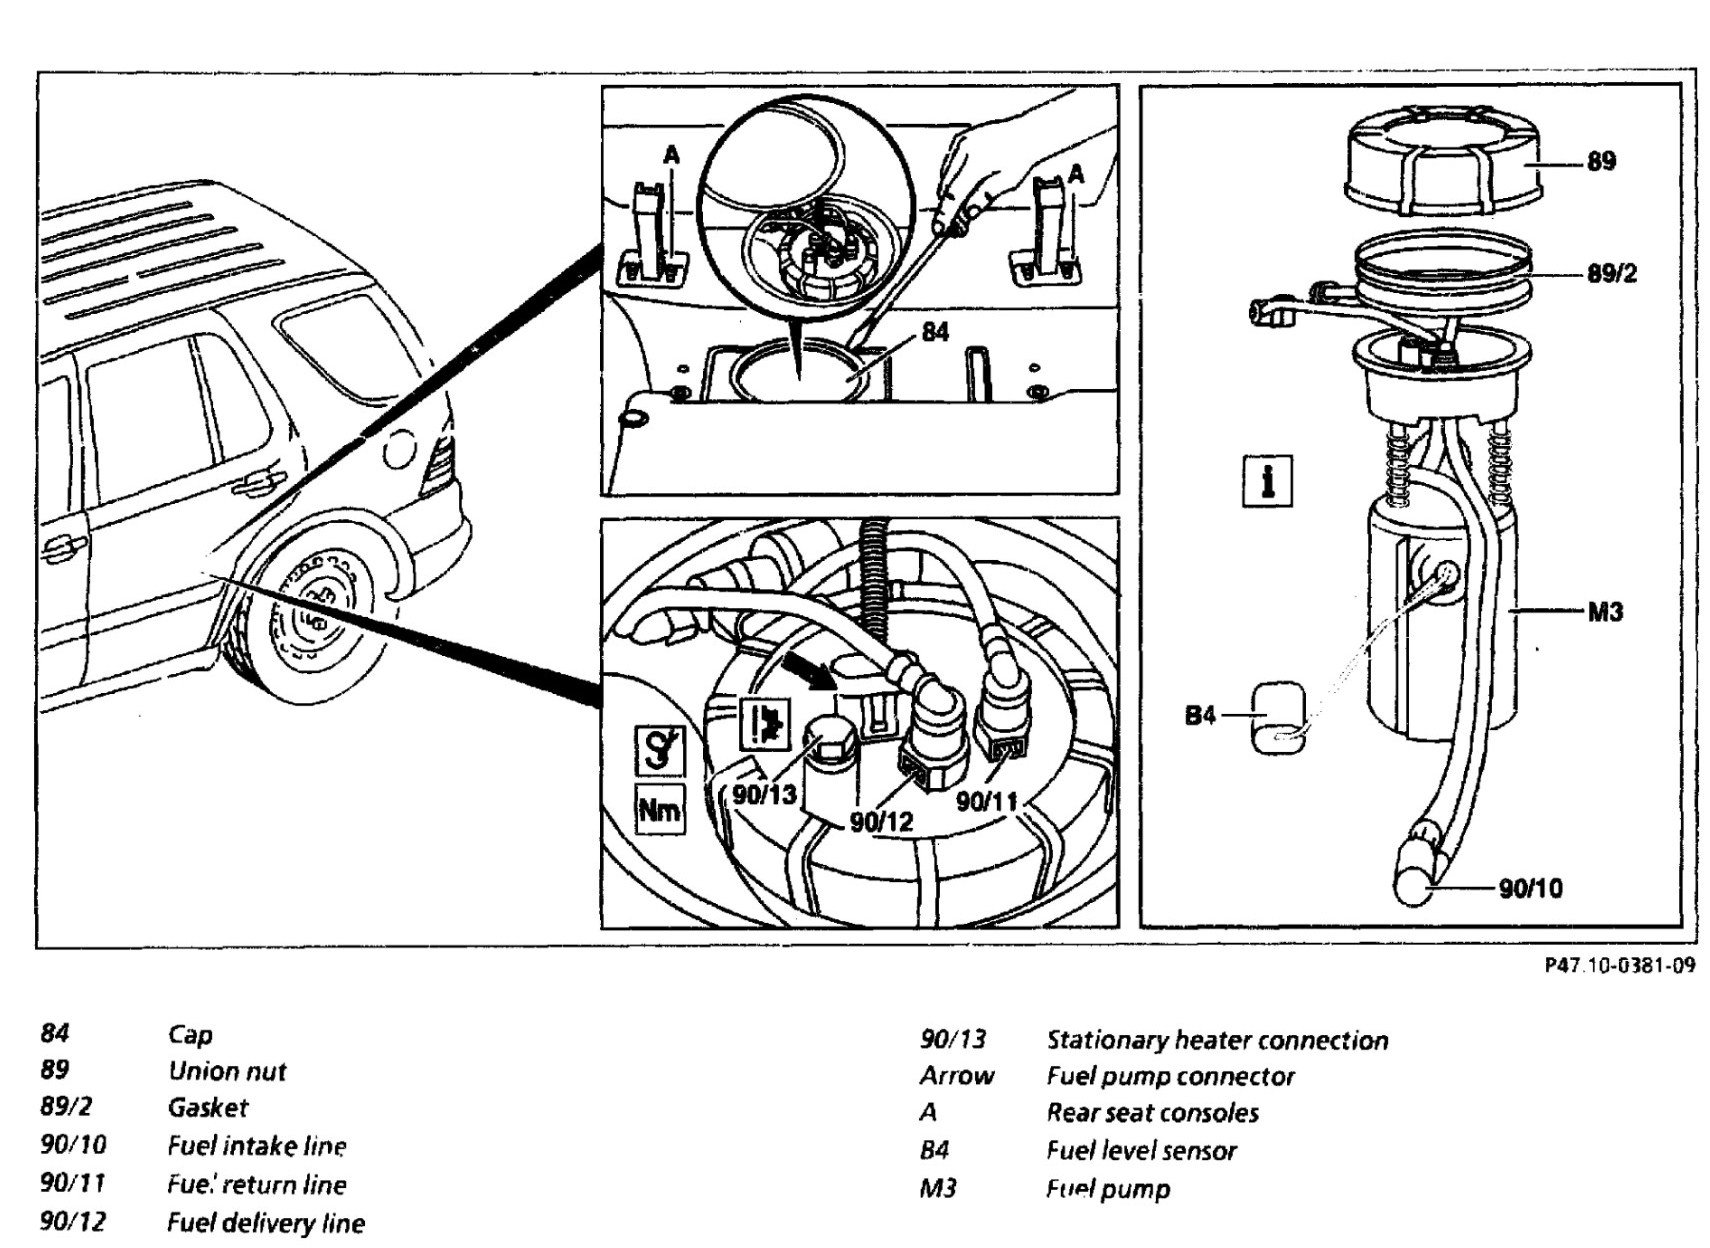 mercedes benz 2001 s430 fuse diagram with Fuse Box Diagram Further Mercedes Cl500 On on Fuse Box Diagram Further Mercedes Cl500 On likewise 3nsfl 1995 E320 Won T Start Harness Chassis Climate Control 1986 furthermore Mercedes S430 Fuse Box Diagram furthermore Mercedes Benz E350 2010 Fuse Box Diagram additionally Diagram As Well Mercedes C230 Fuse Box Besides.